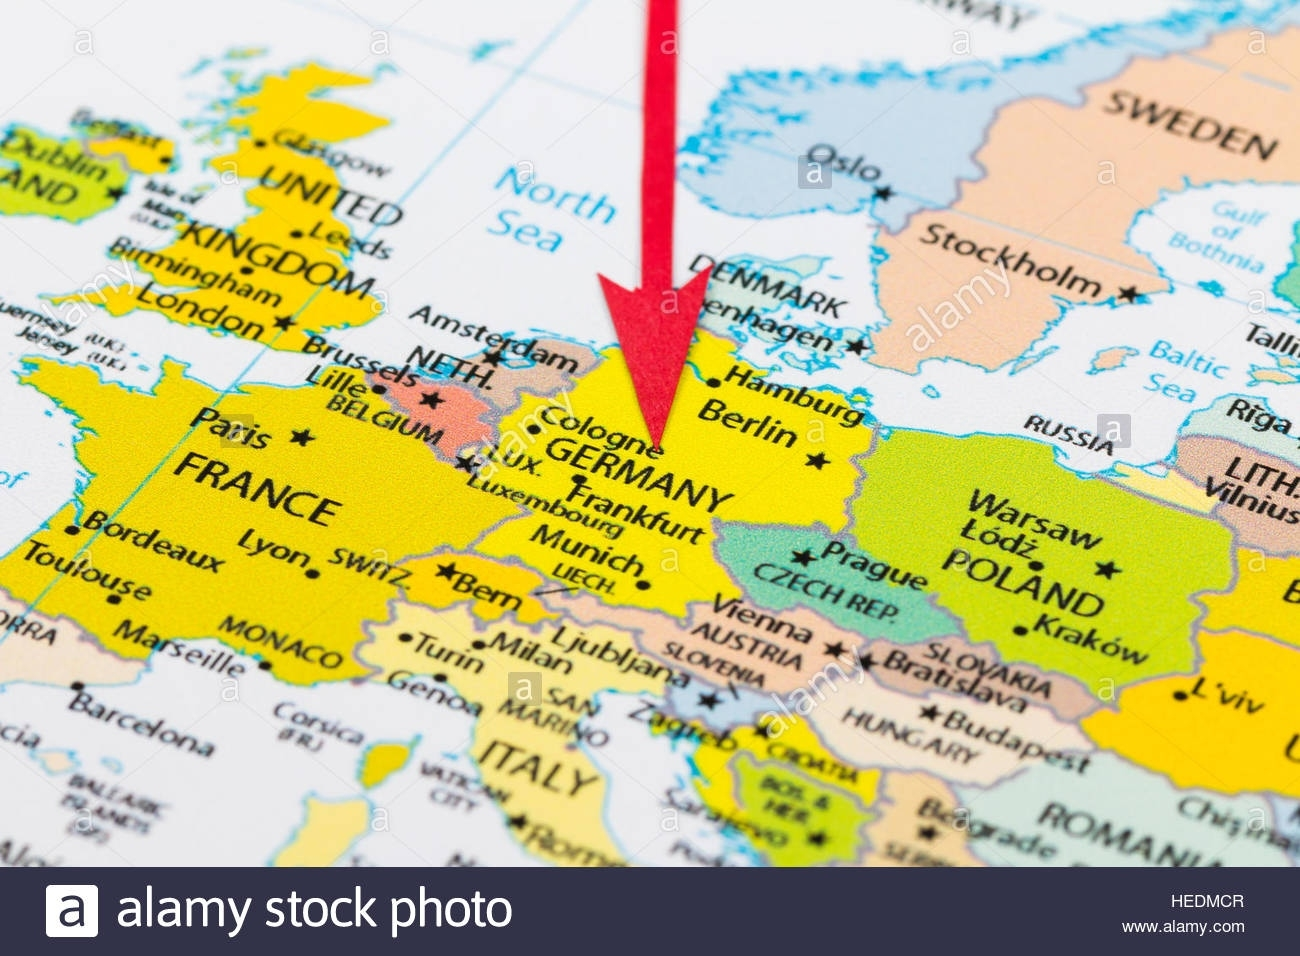 Red Arrow Pointing Germany On The Map Of Europe Continent Stock pertaining to Frankfurt Germany Europe Map